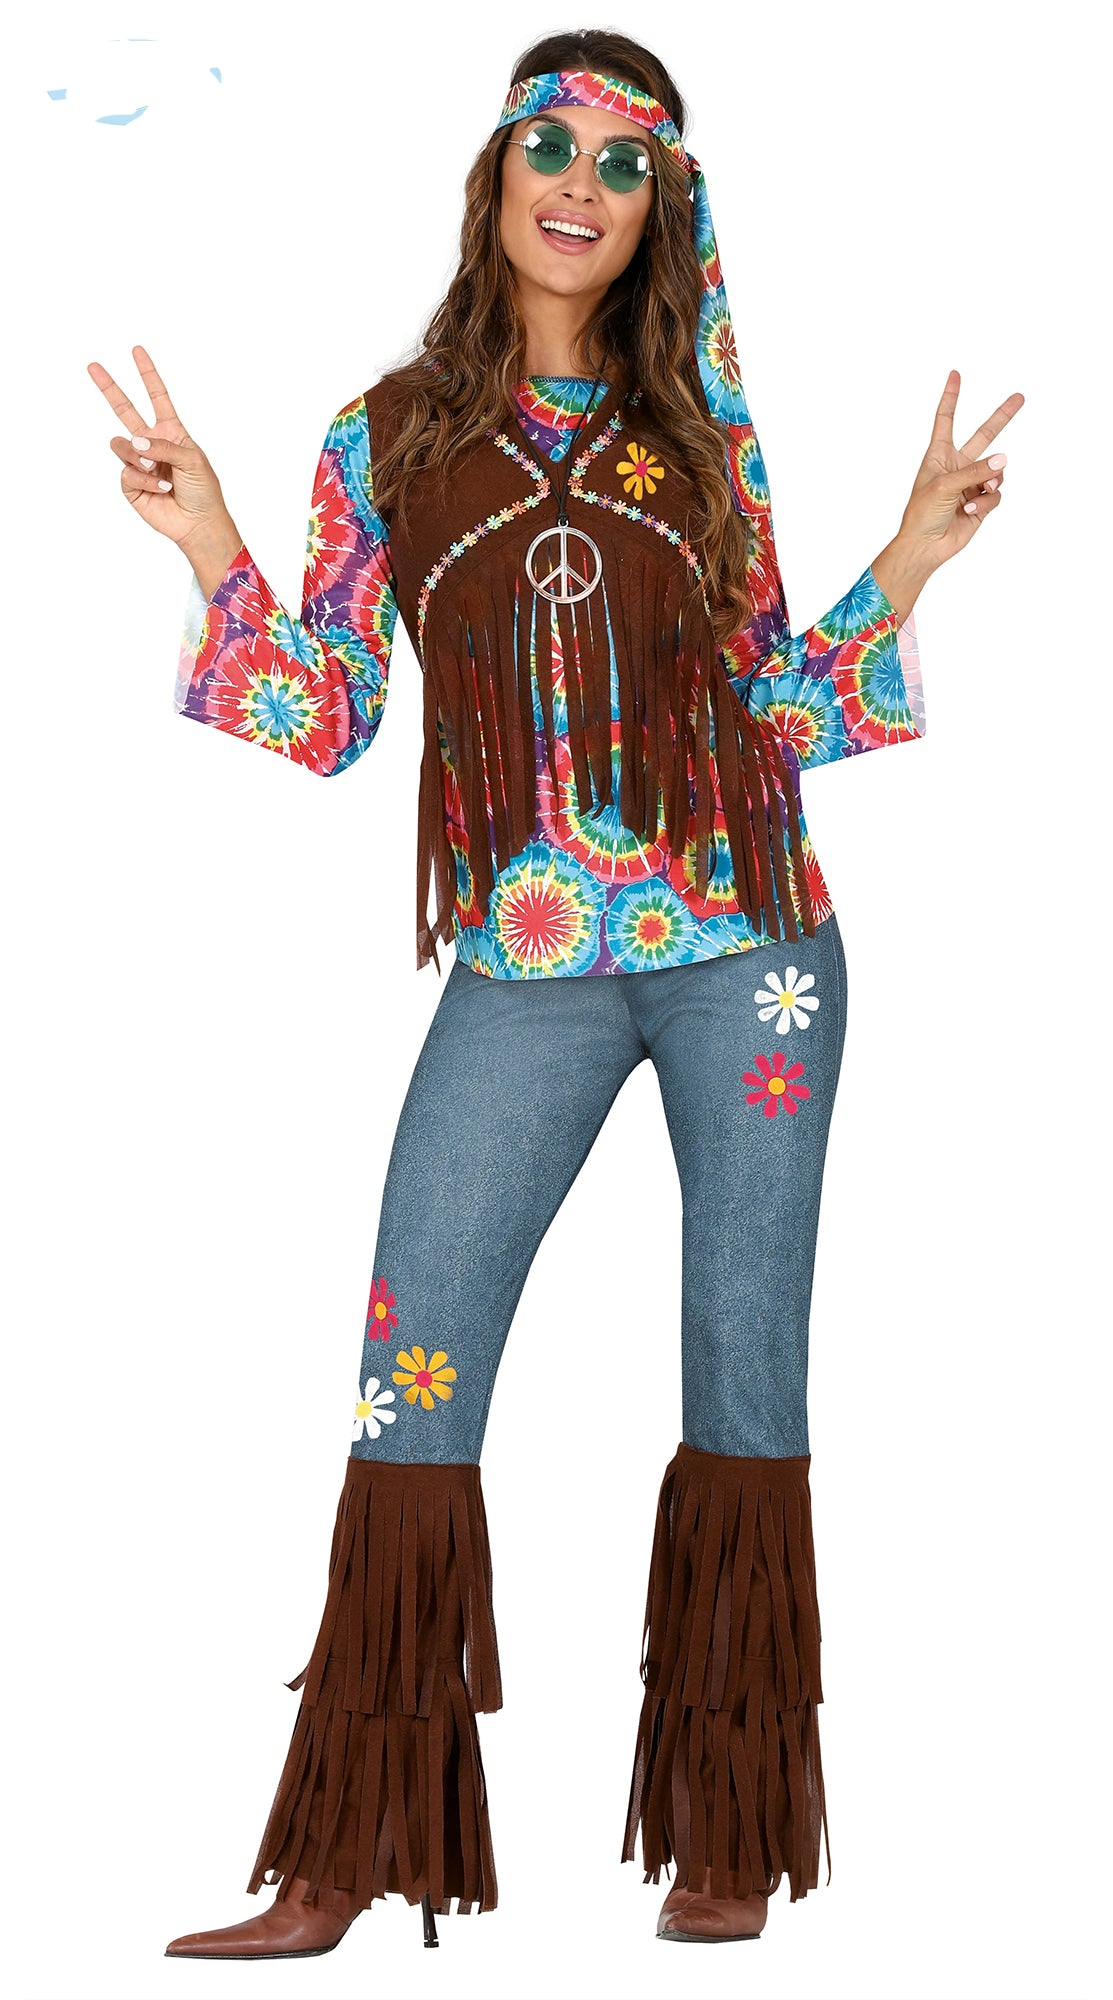 Hippy Dippy Woman Costume For Adults